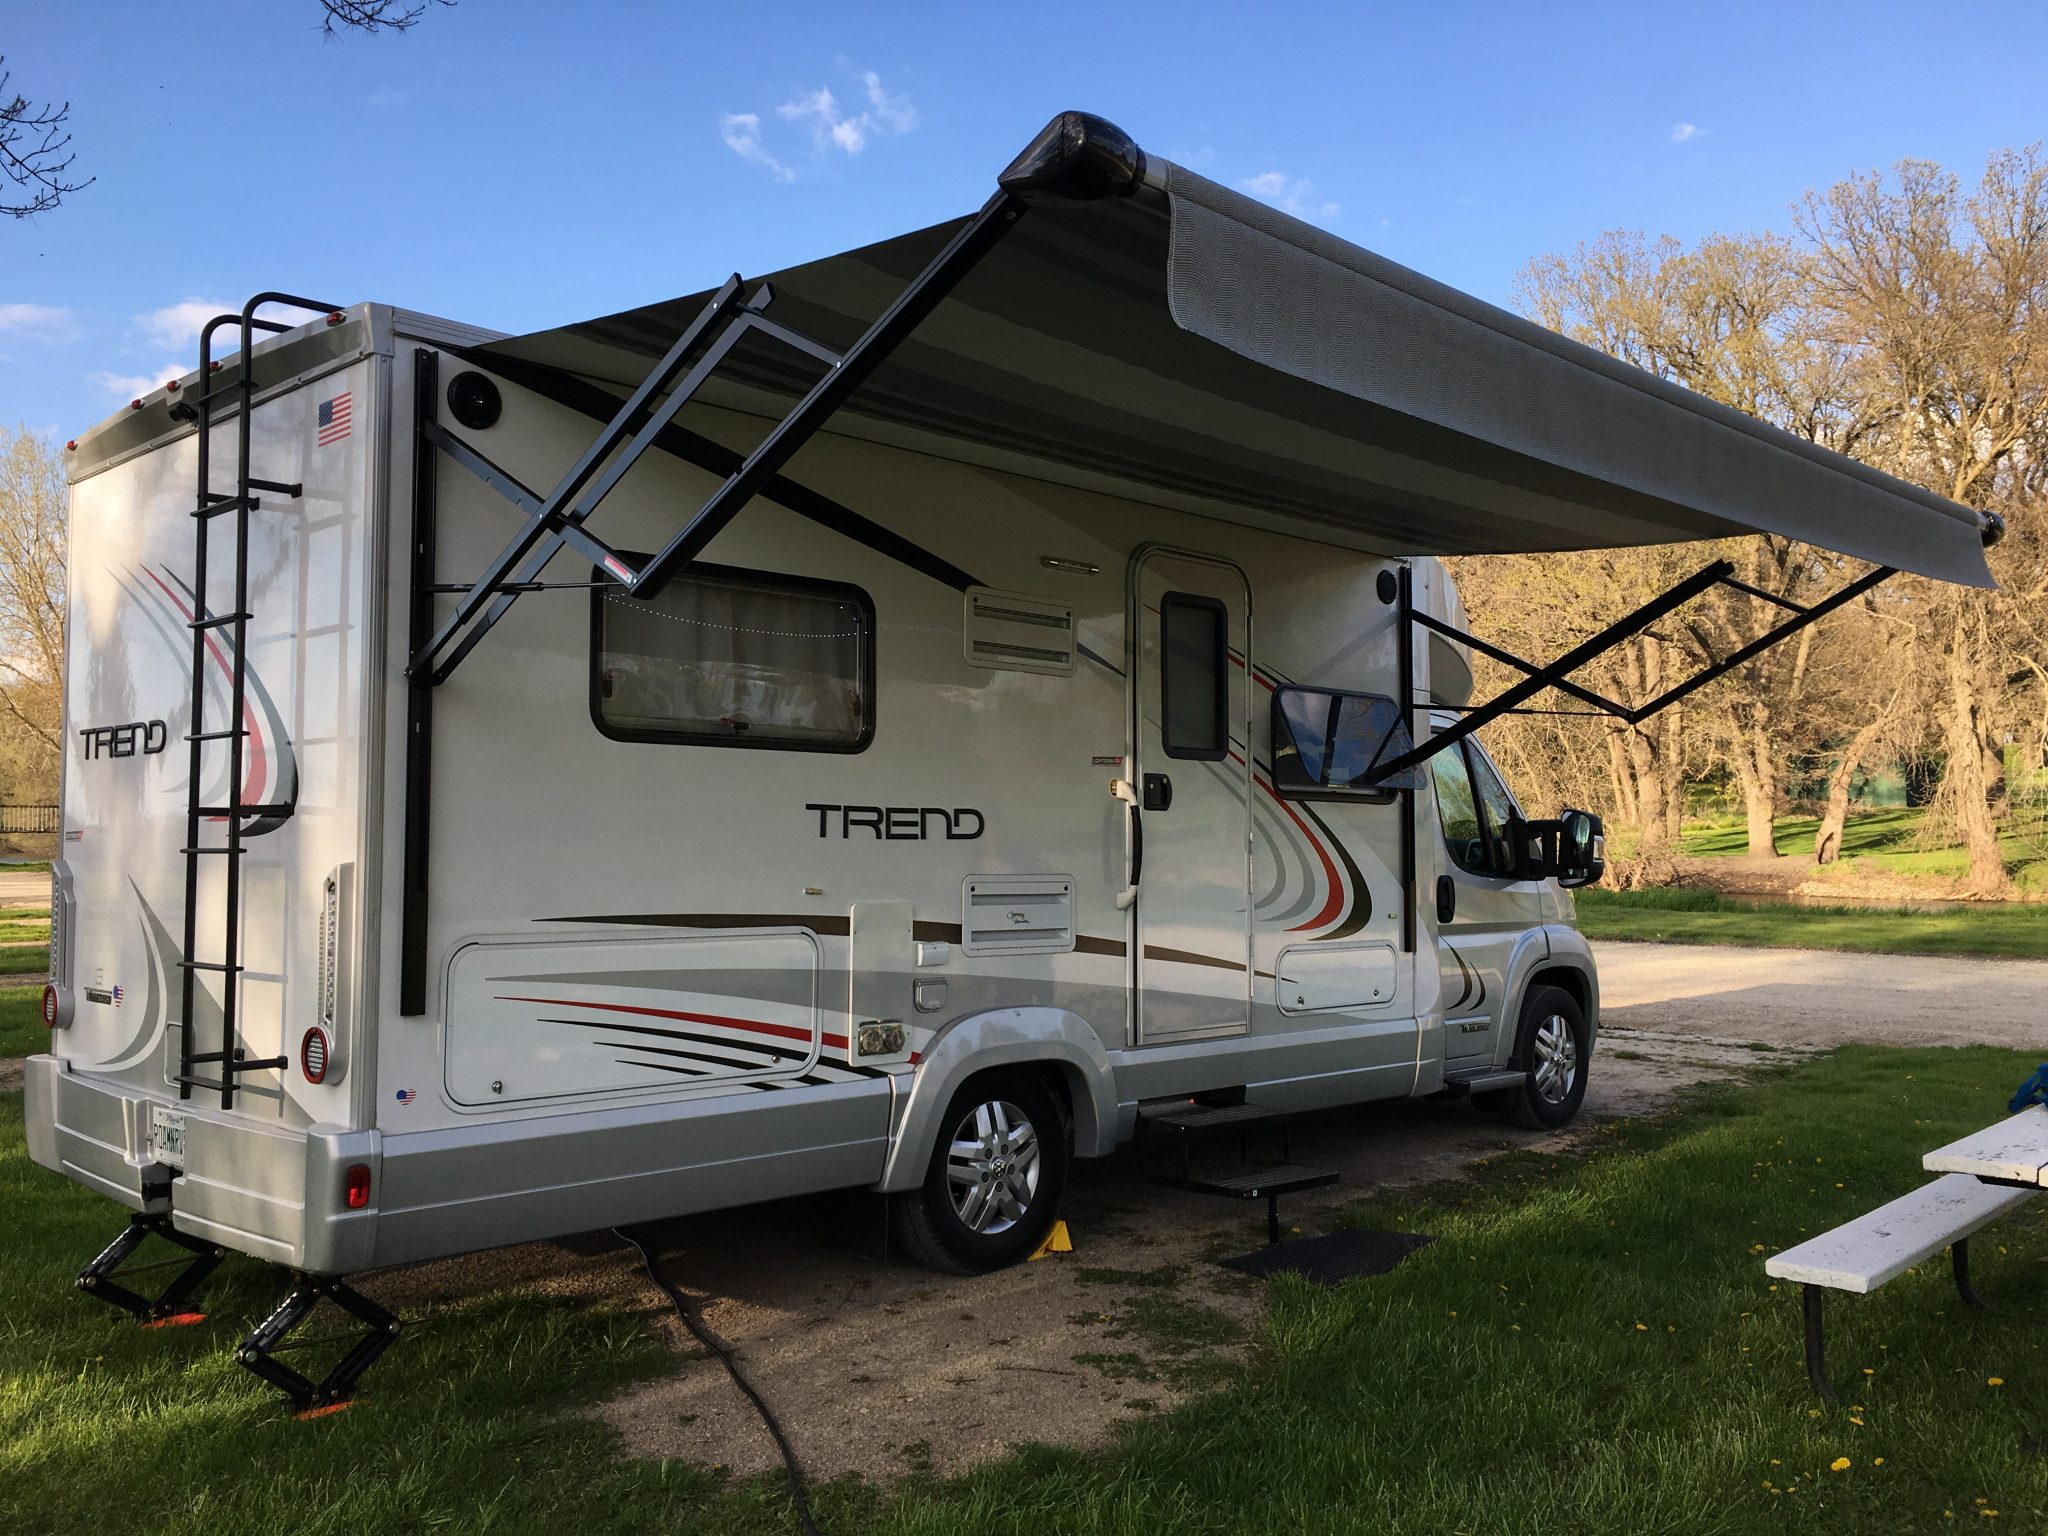 tape shade kit san installation parts mobile s diego complete for australia awning sale amazon awnings repair rv fabric